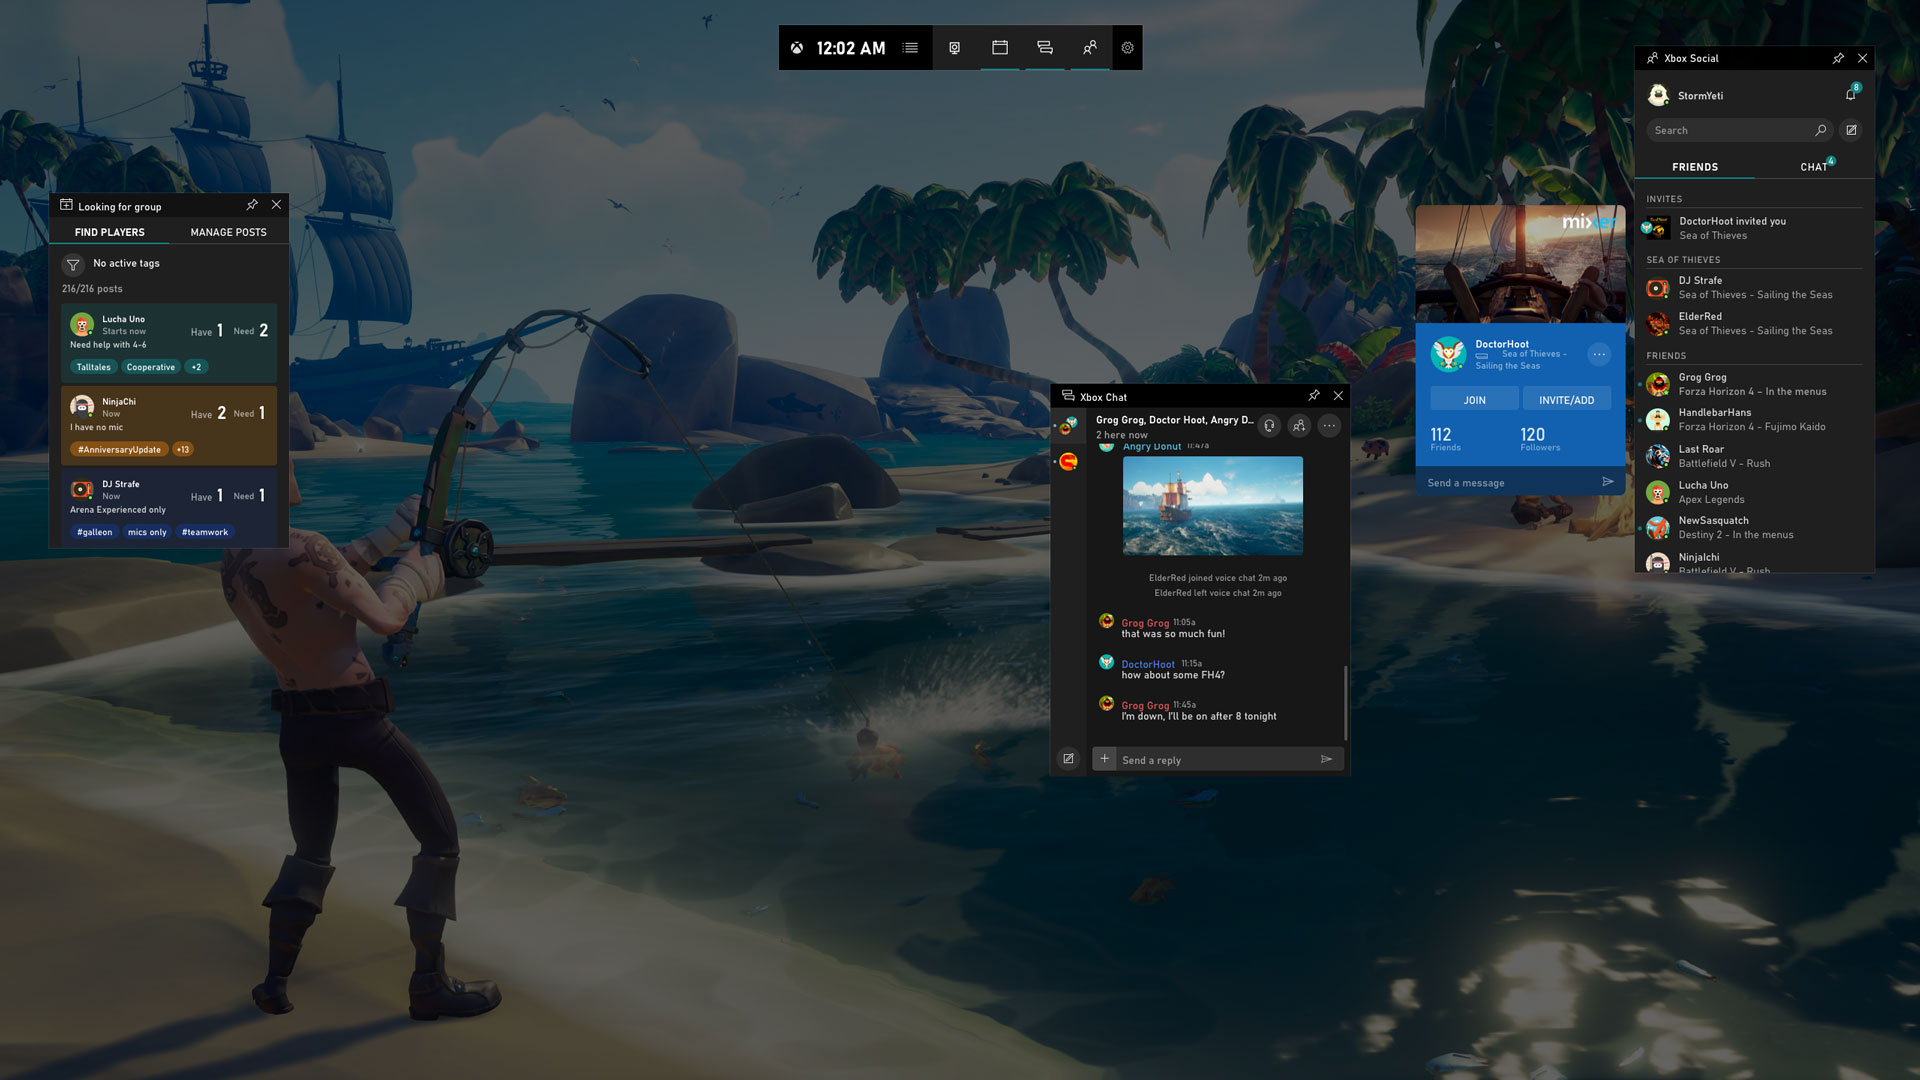 Windows 10 Xbox Game Bar features update arrives - PC - News